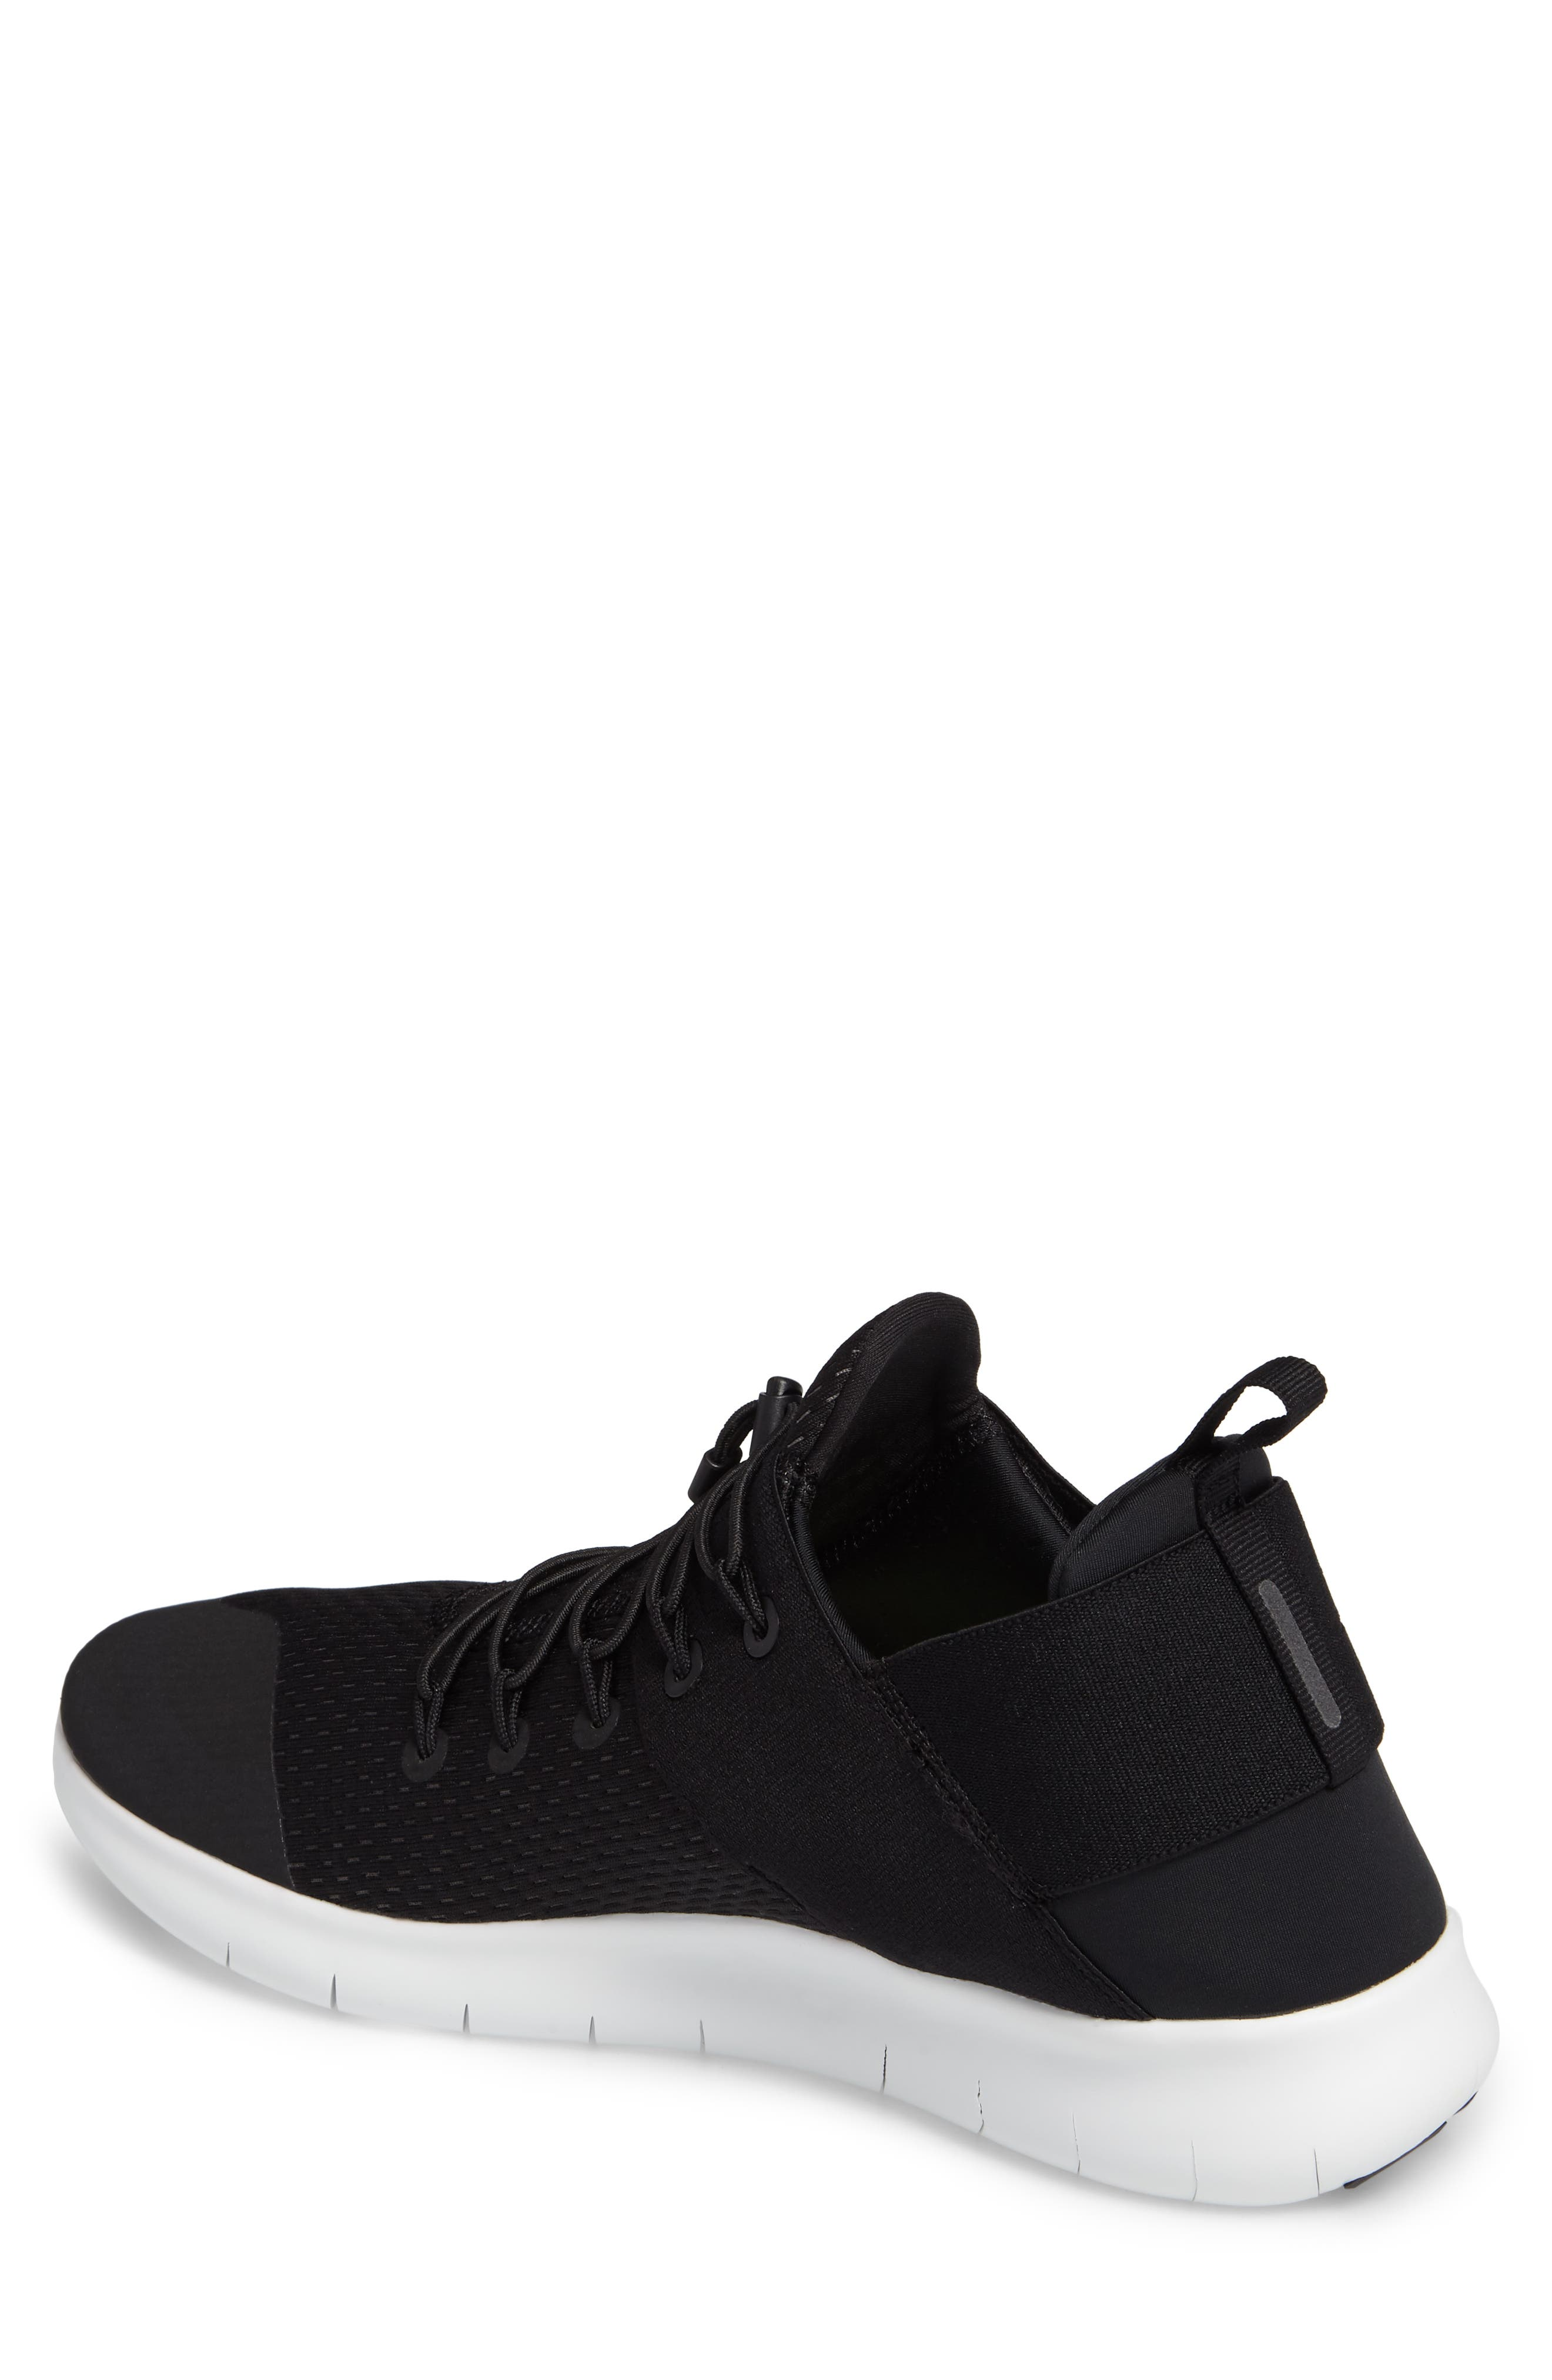 Free RN CMTR 2 Running Shoe,                             Alternate thumbnail 2, color,                             BLACK/ ANTHRACITE/ OFF WHITE